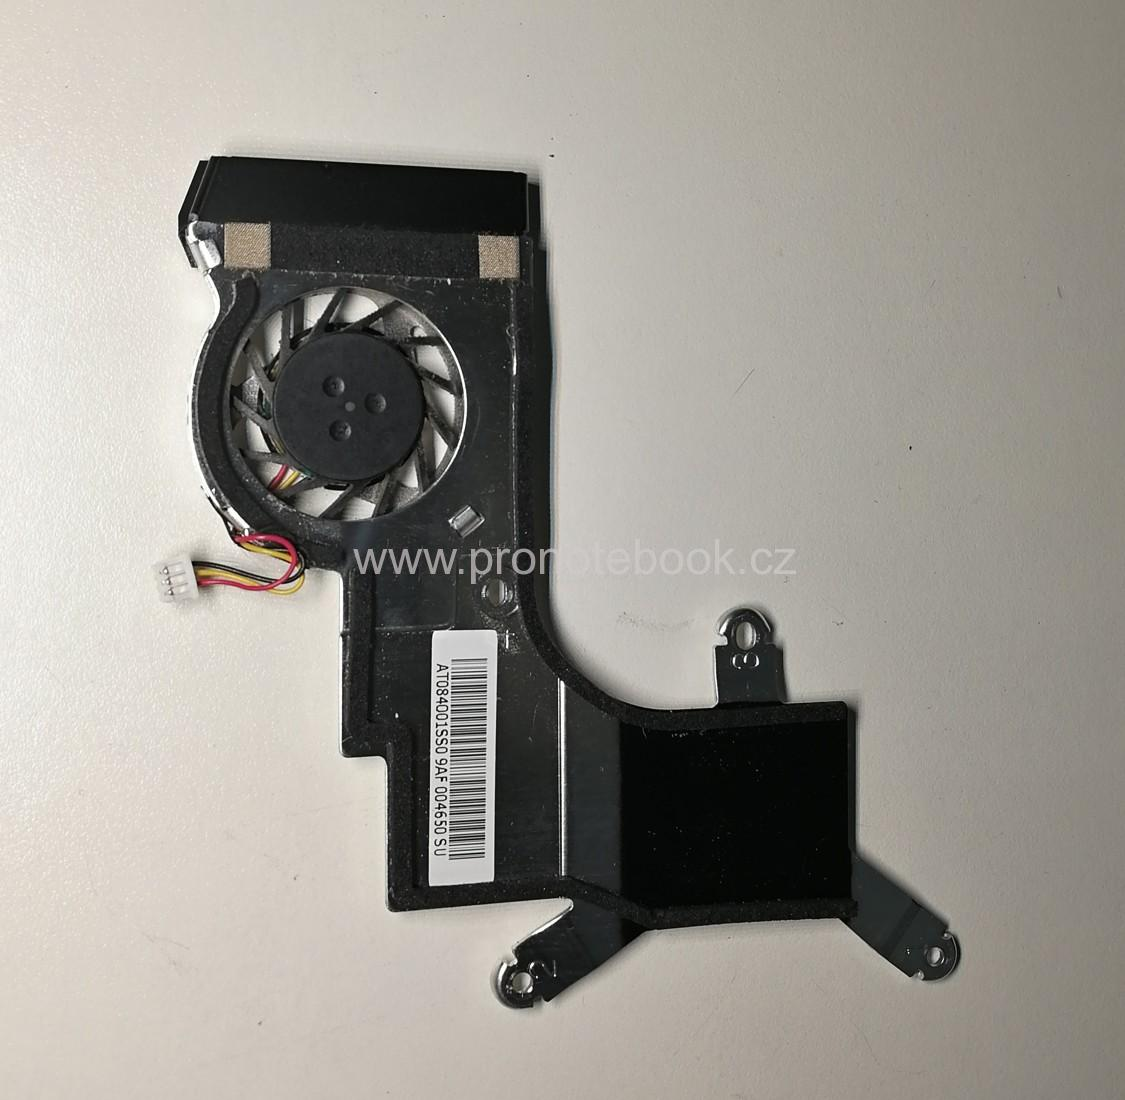 Acer Aspire One D250 (KAV60)  fan + heatsink AT084001SS0, GC053507VH-A